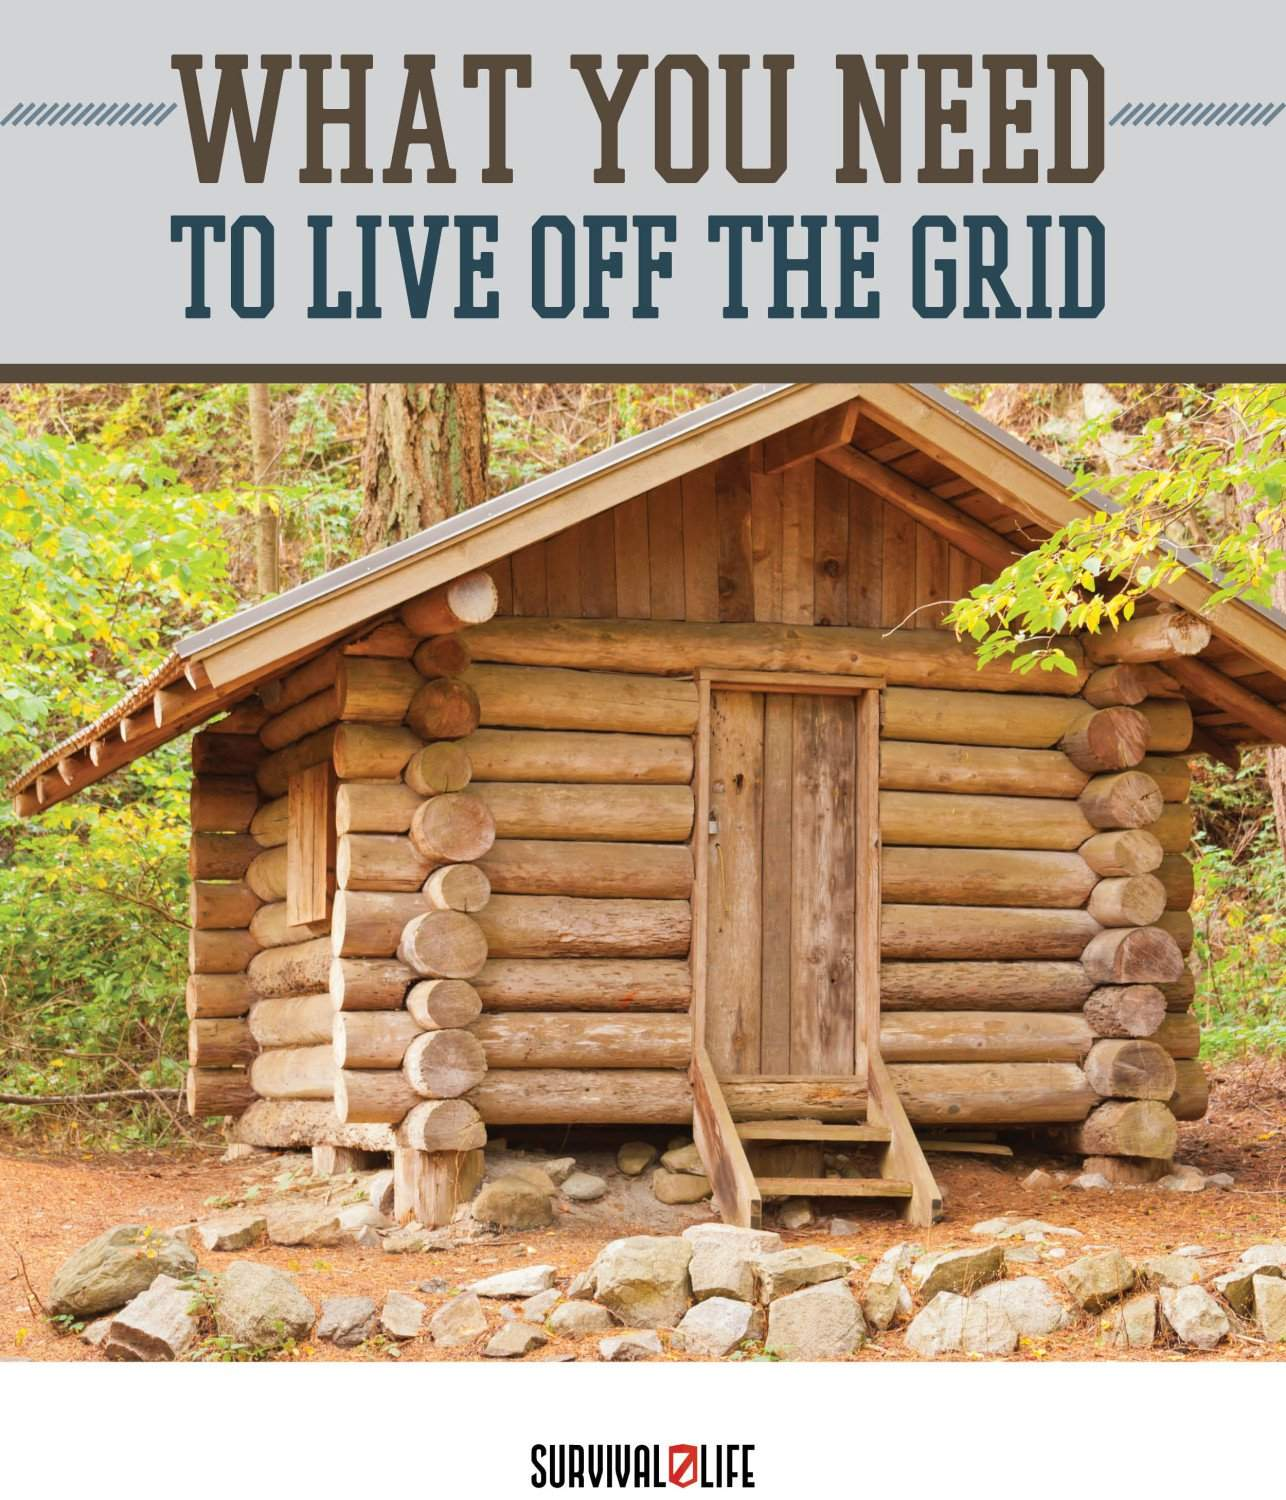 Things You Need to Live Off the Grid by Survival Life at http://survivallife.com/2015/05/26/things-you-need-off-the-grid/